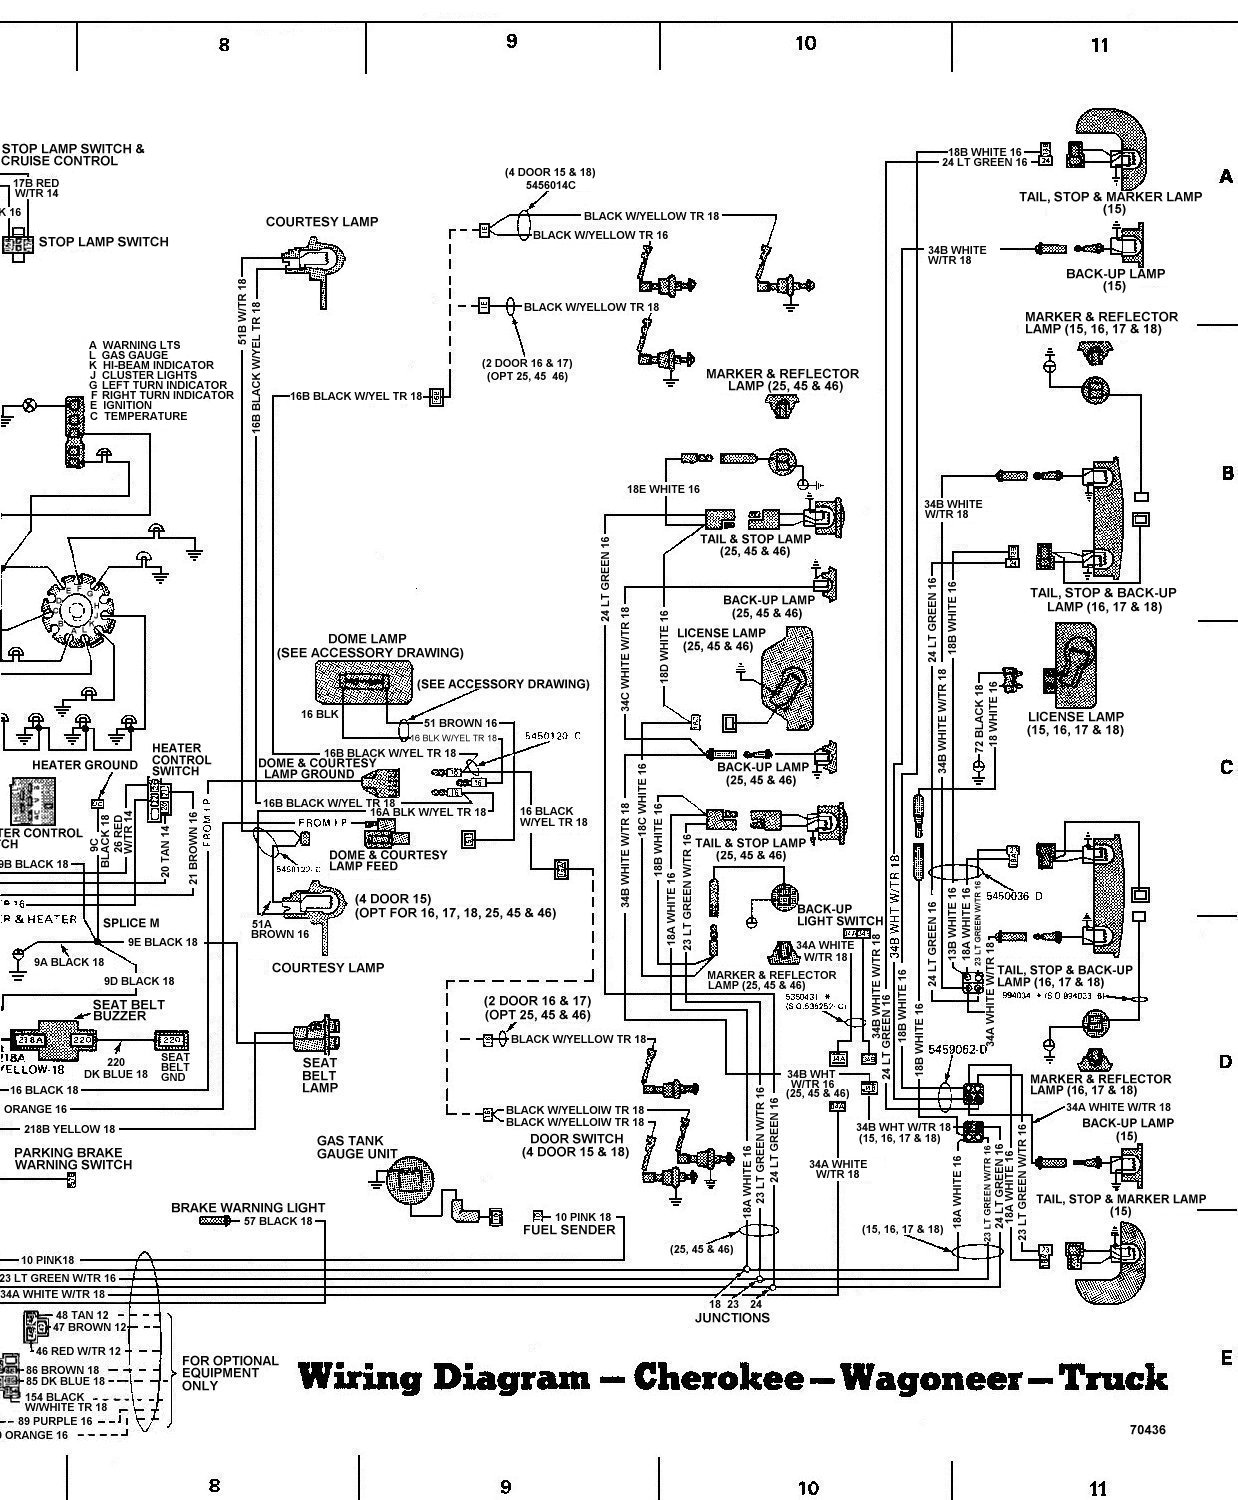 Wire Diagram 86 Jeep Xj - Wiring Diagram Directory on 86 mustang wiring diagram, 86 chevy wiring diagram, 86 corvette wiring diagram, 86 bronco wiring diagram, 86 camaro wiring diagram, 86 ford wiring diagram,